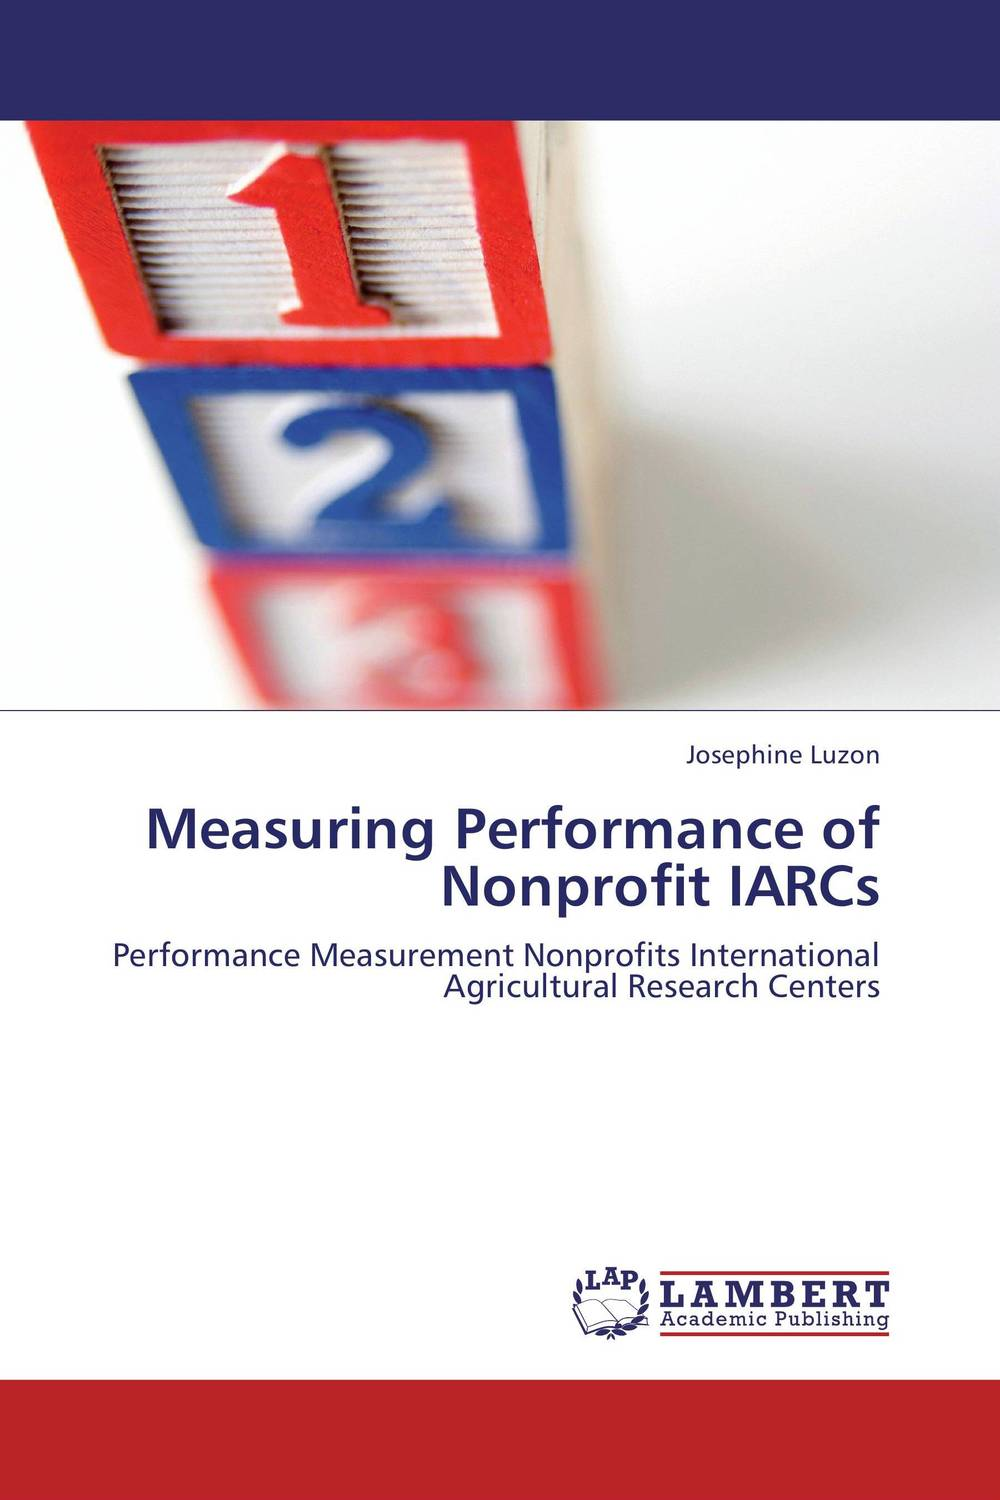 Measuring Performance of Nonprofit IARCs barry mcleish j successful marketing strategies for nonprofit organizations winning in the age of the elusive donor